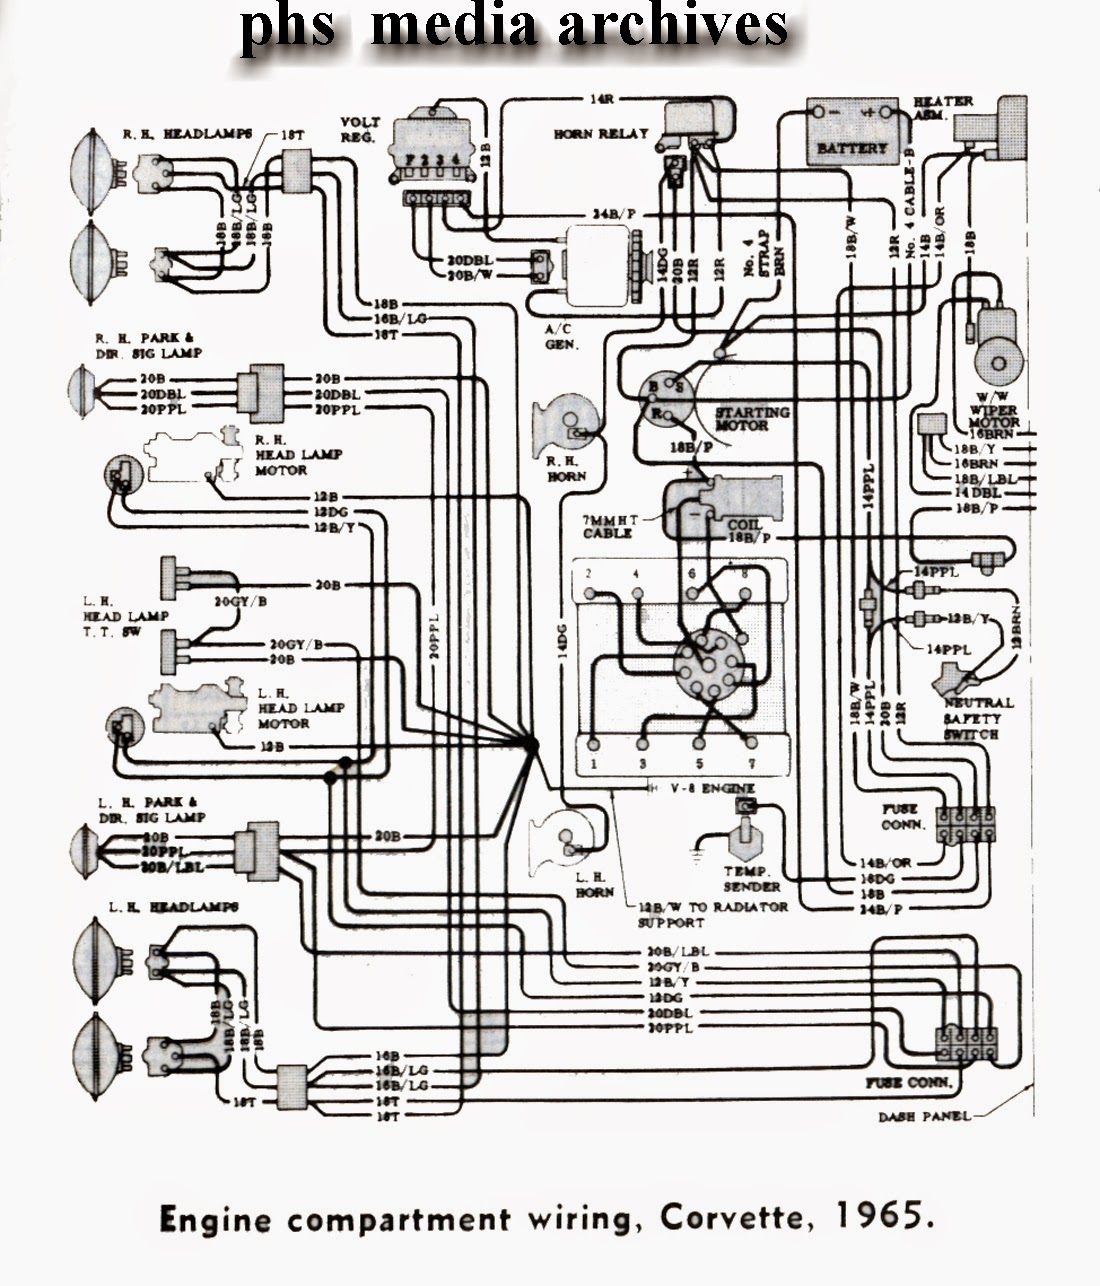 1966 Gto Fuse Panel Diagram Opinions About Wiring Diagram \u2022 02  Explorer Central Fuse Box Diagram 02 Explorer Fuse Box Diagram. Source.  2006 ford truck ...